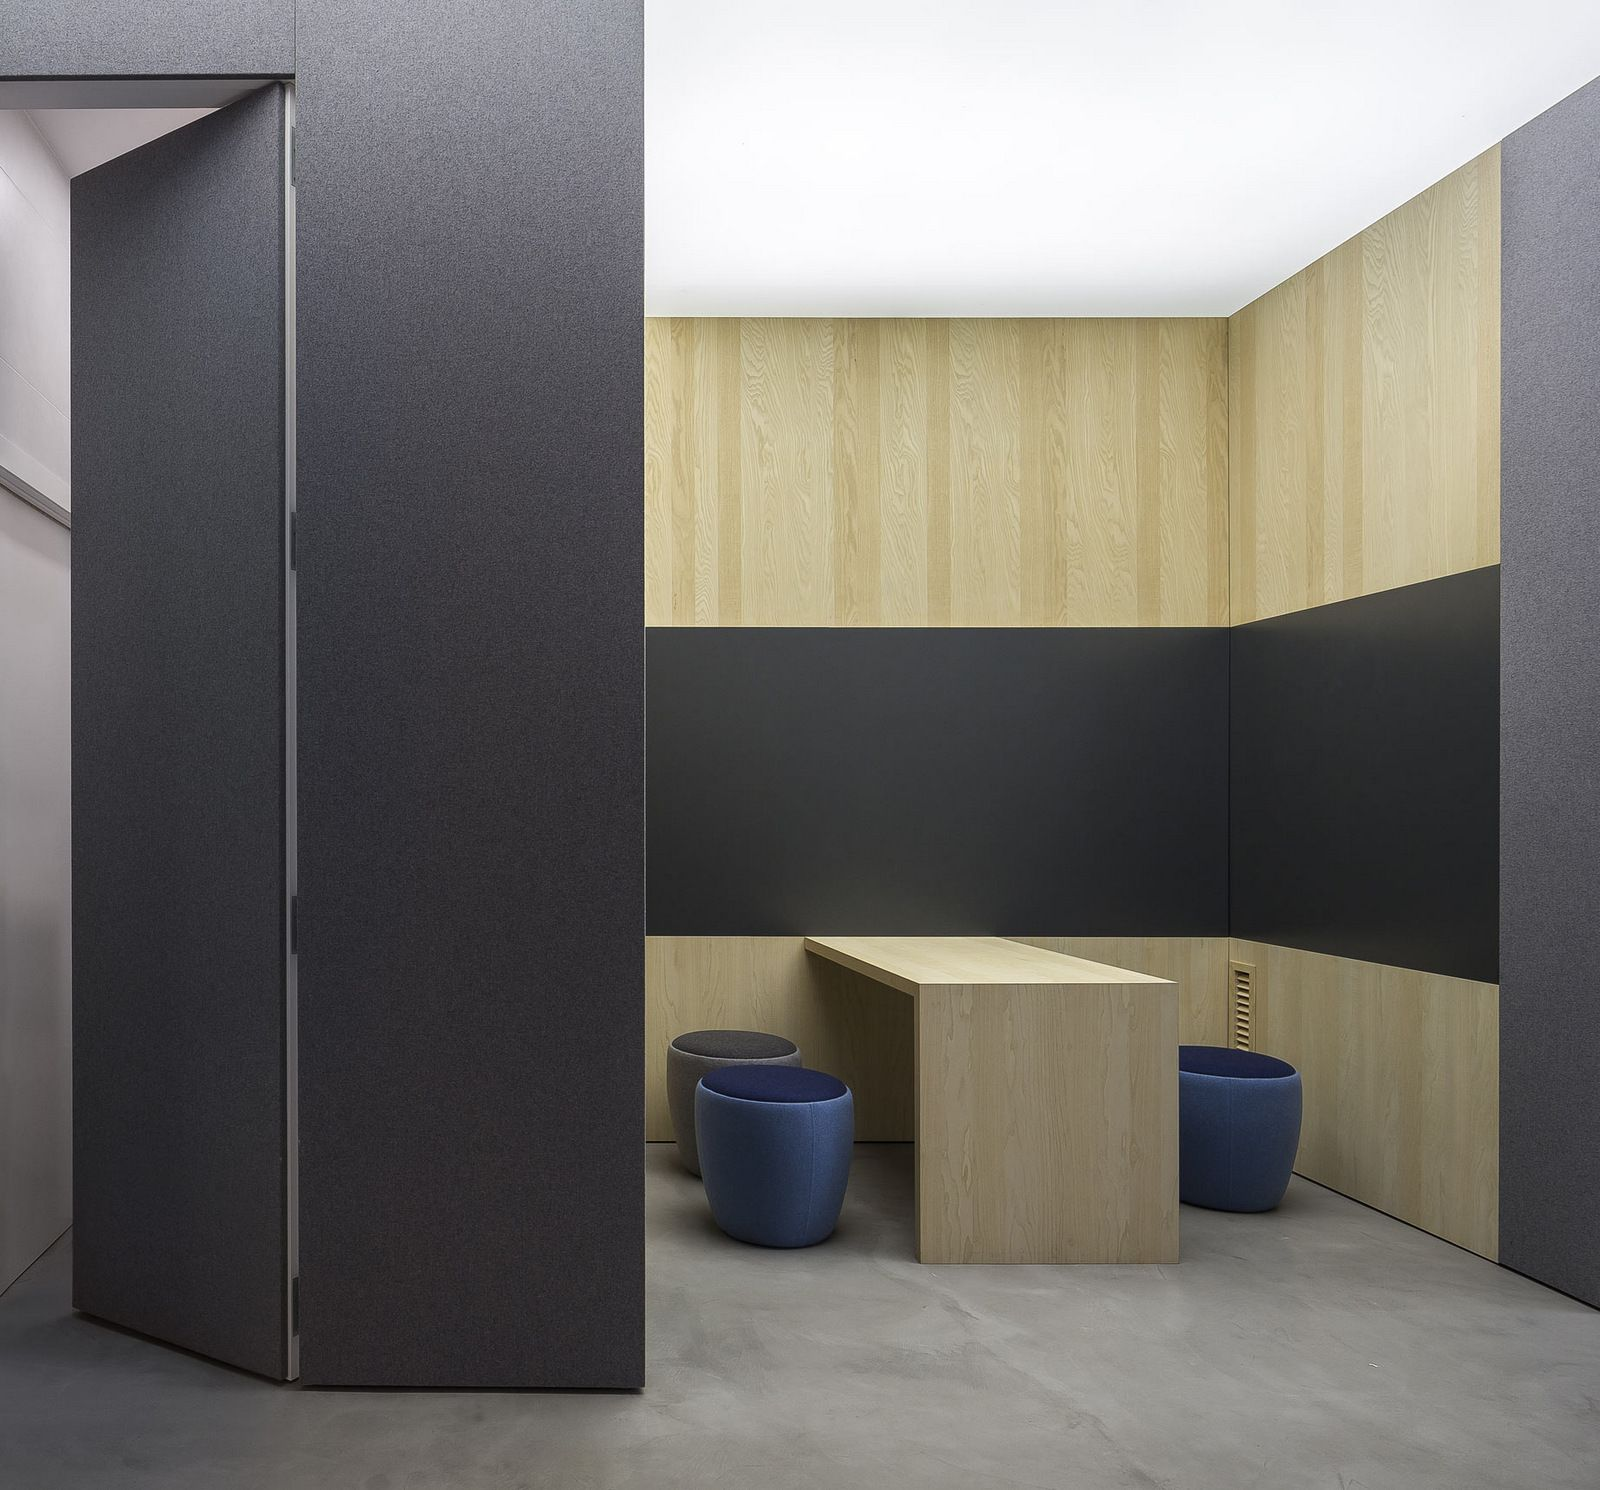 Nonna Designprojects Office by Nonna Designprojects - Office Snapshots